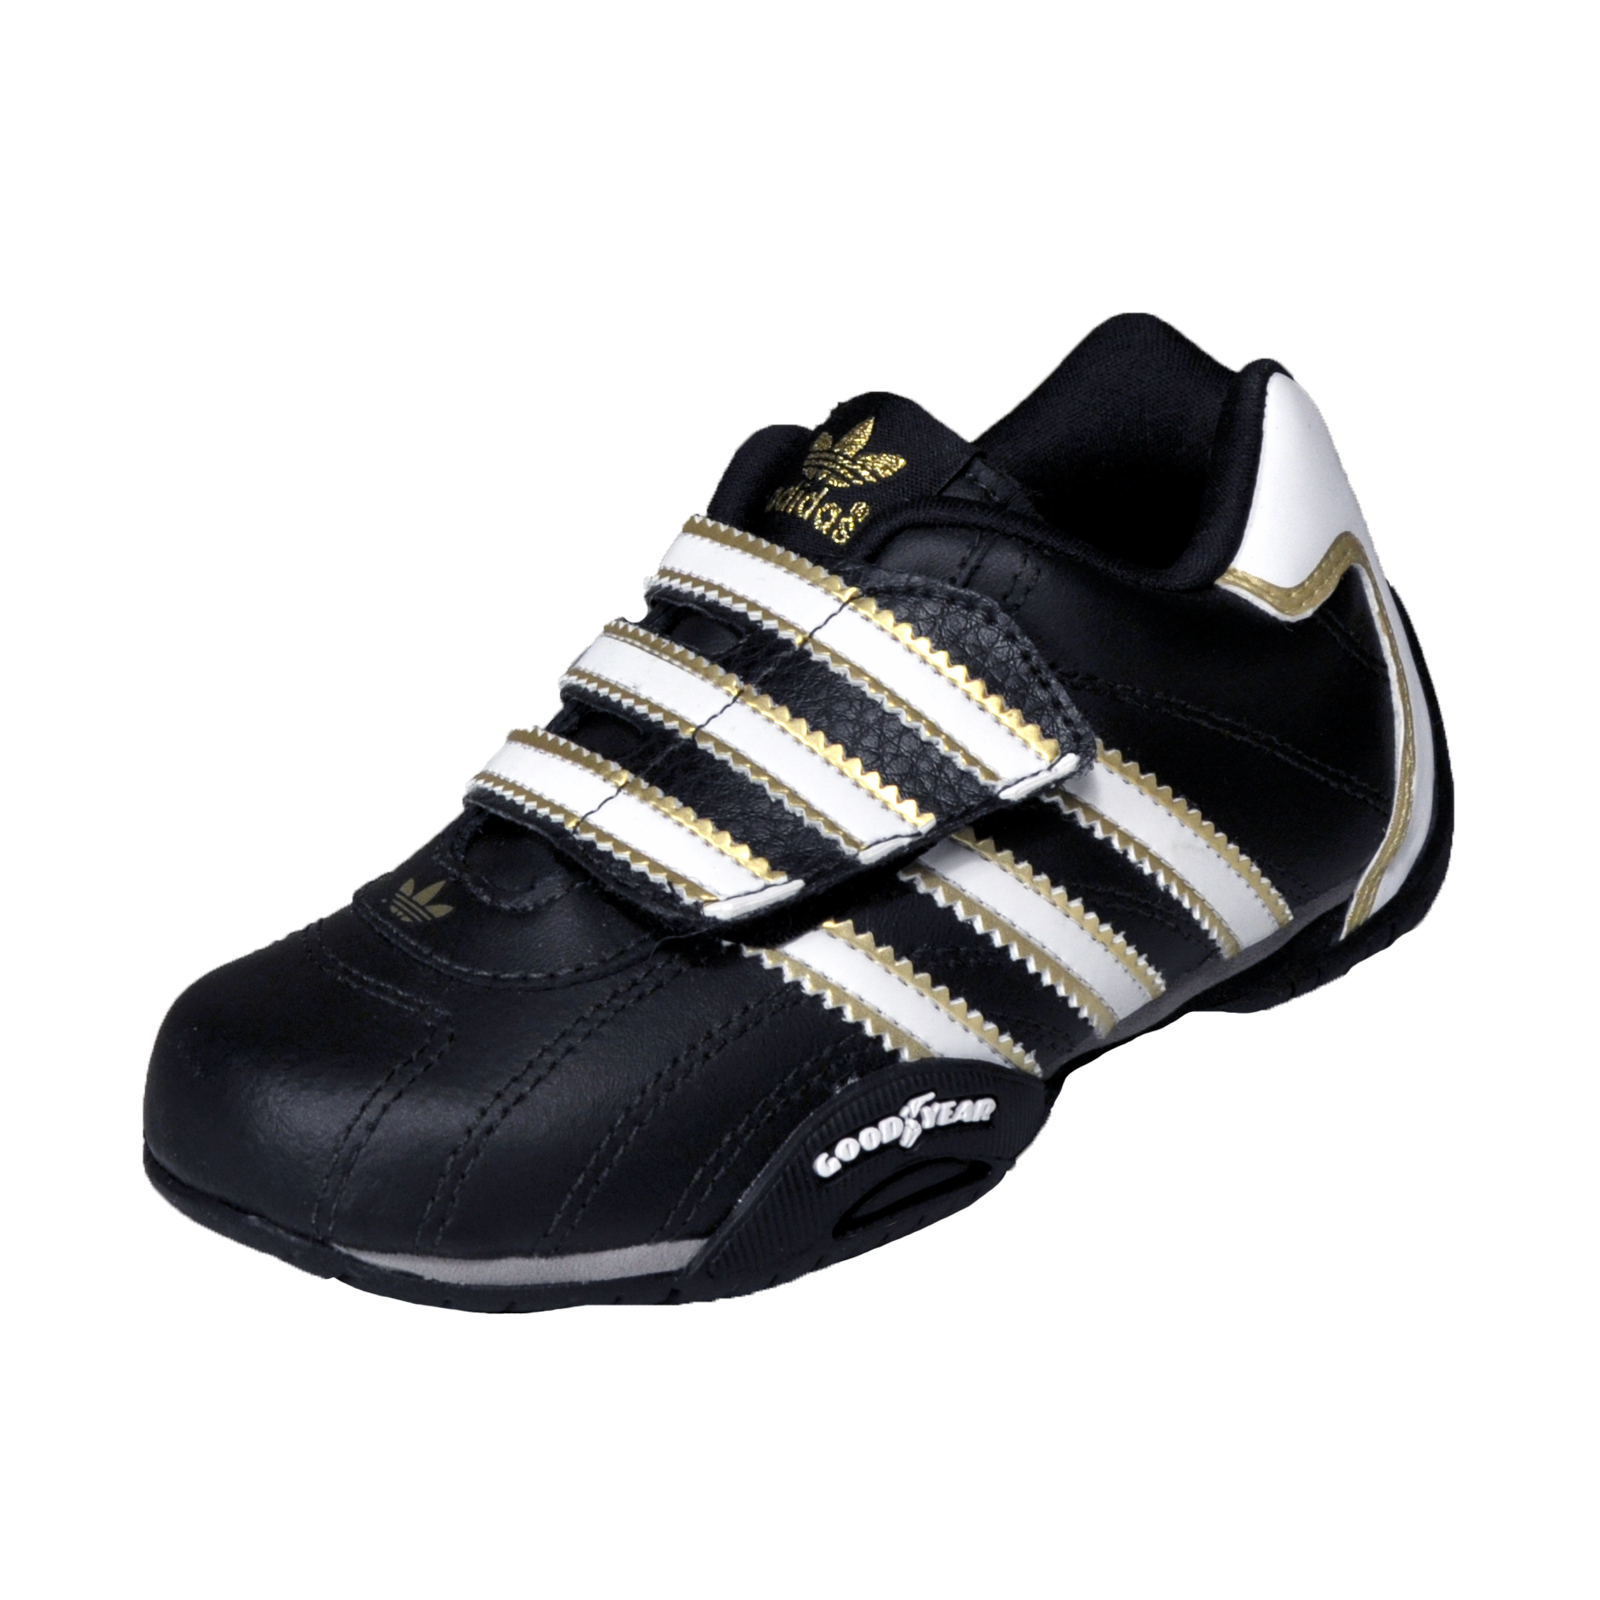 adidas originals infants goodyear racer lo leather. Black Bedroom Furniture Sets. Home Design Ideas